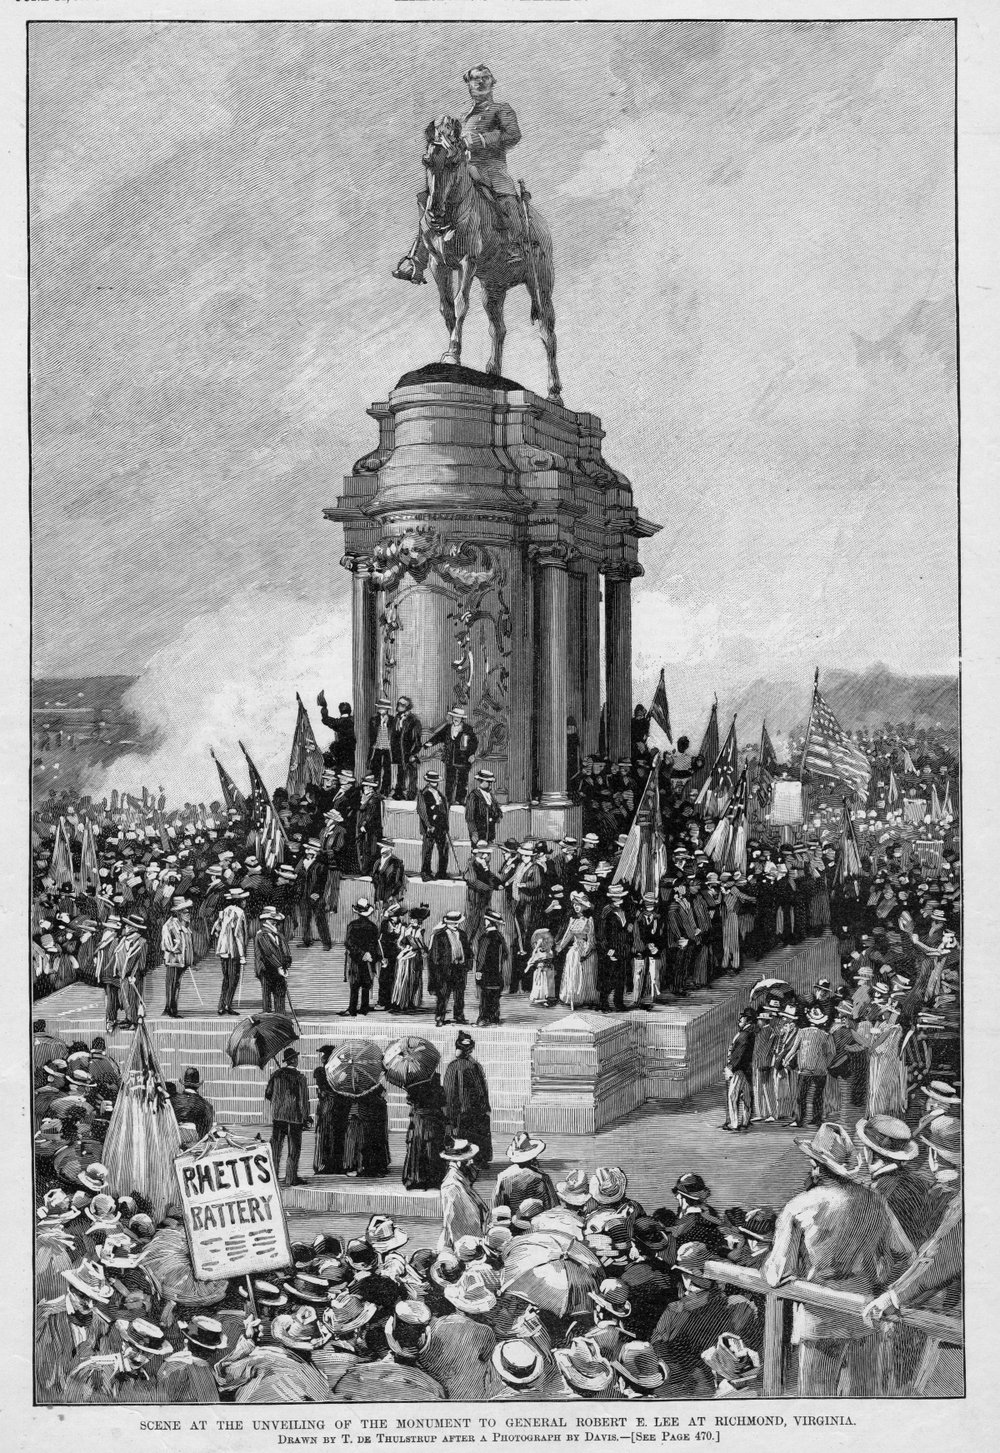 The unveiling of the statue in Rochmond, via the Library of Virginia